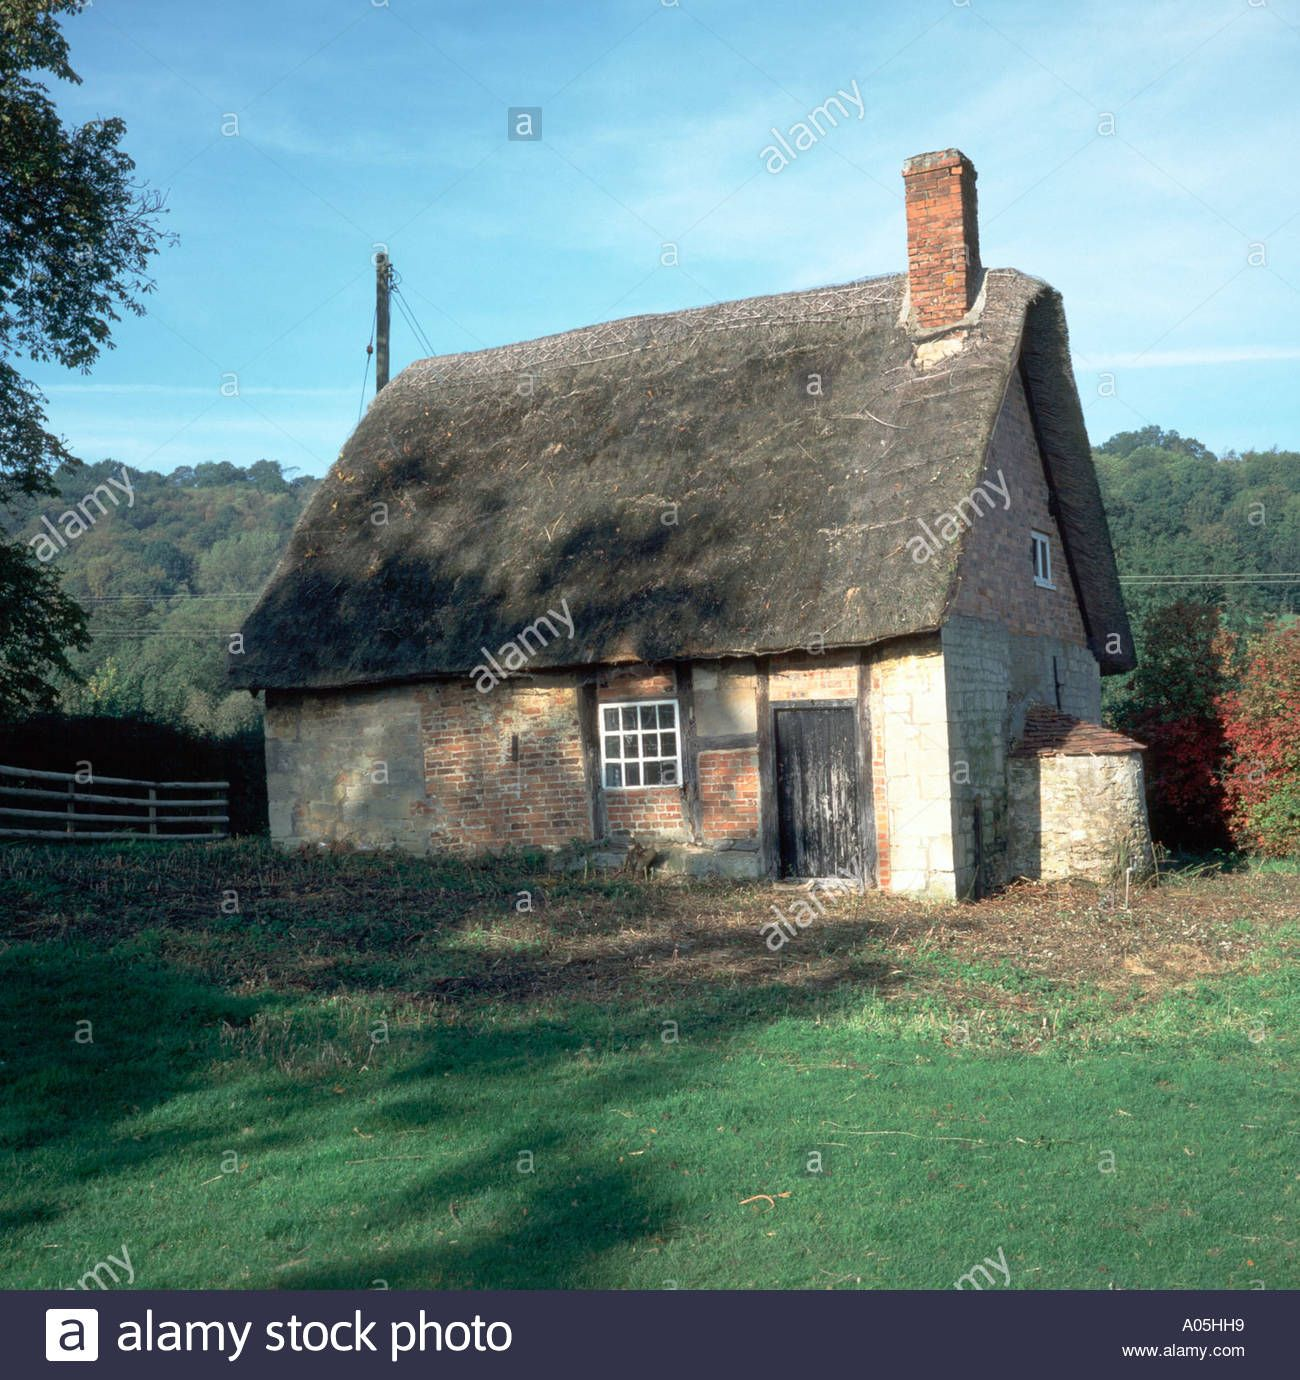 Small Run Down Old Thatched Cottage Stock Photo Thatched Cottage Old Cottage Cottage